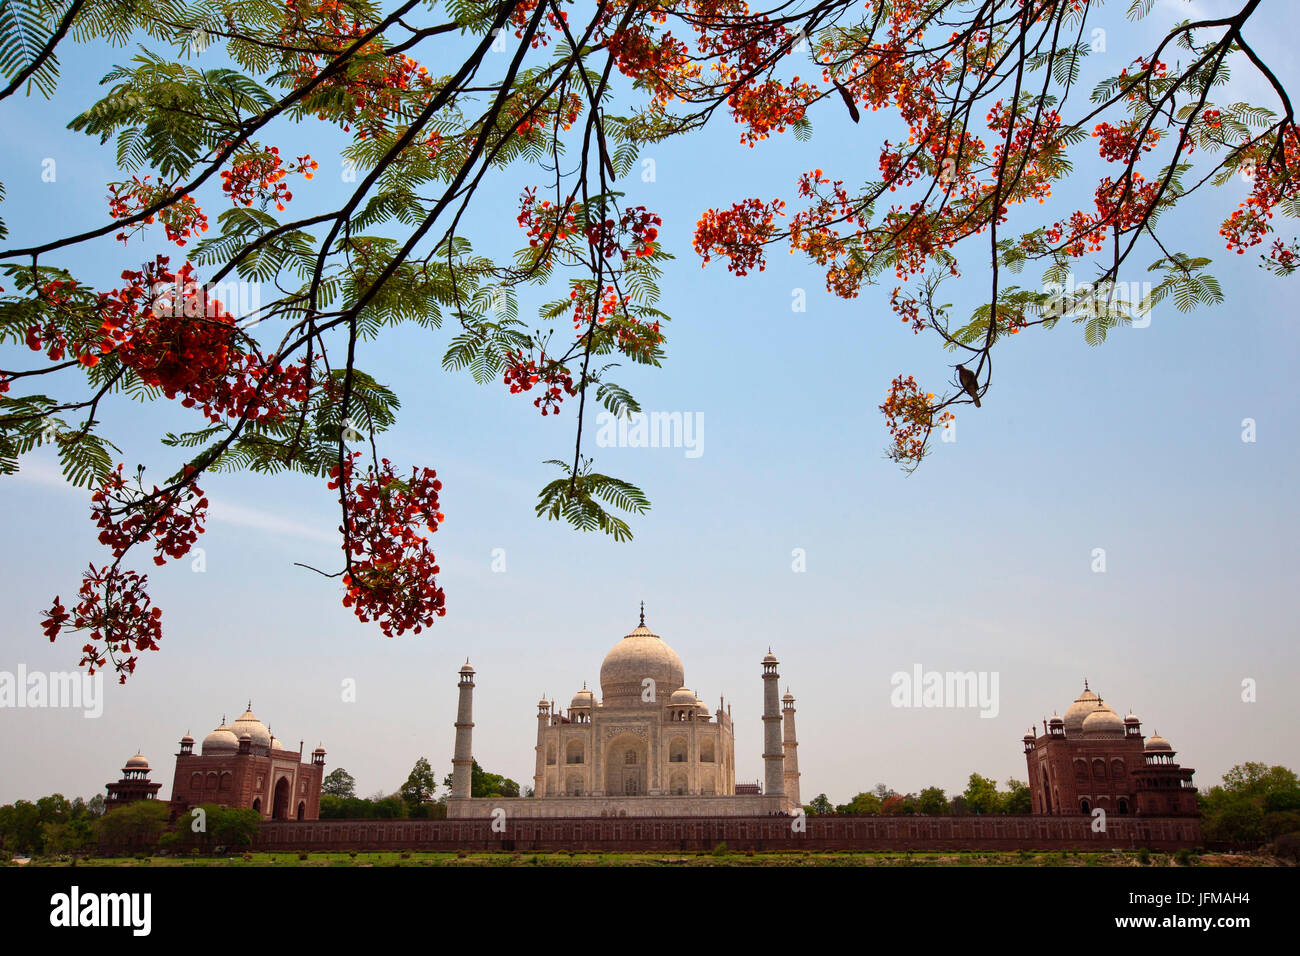 The magnificent Taj Mahal is one of the Seven Wonders of the World and is one UNESCO World Heritage Site, It is - Stock Image